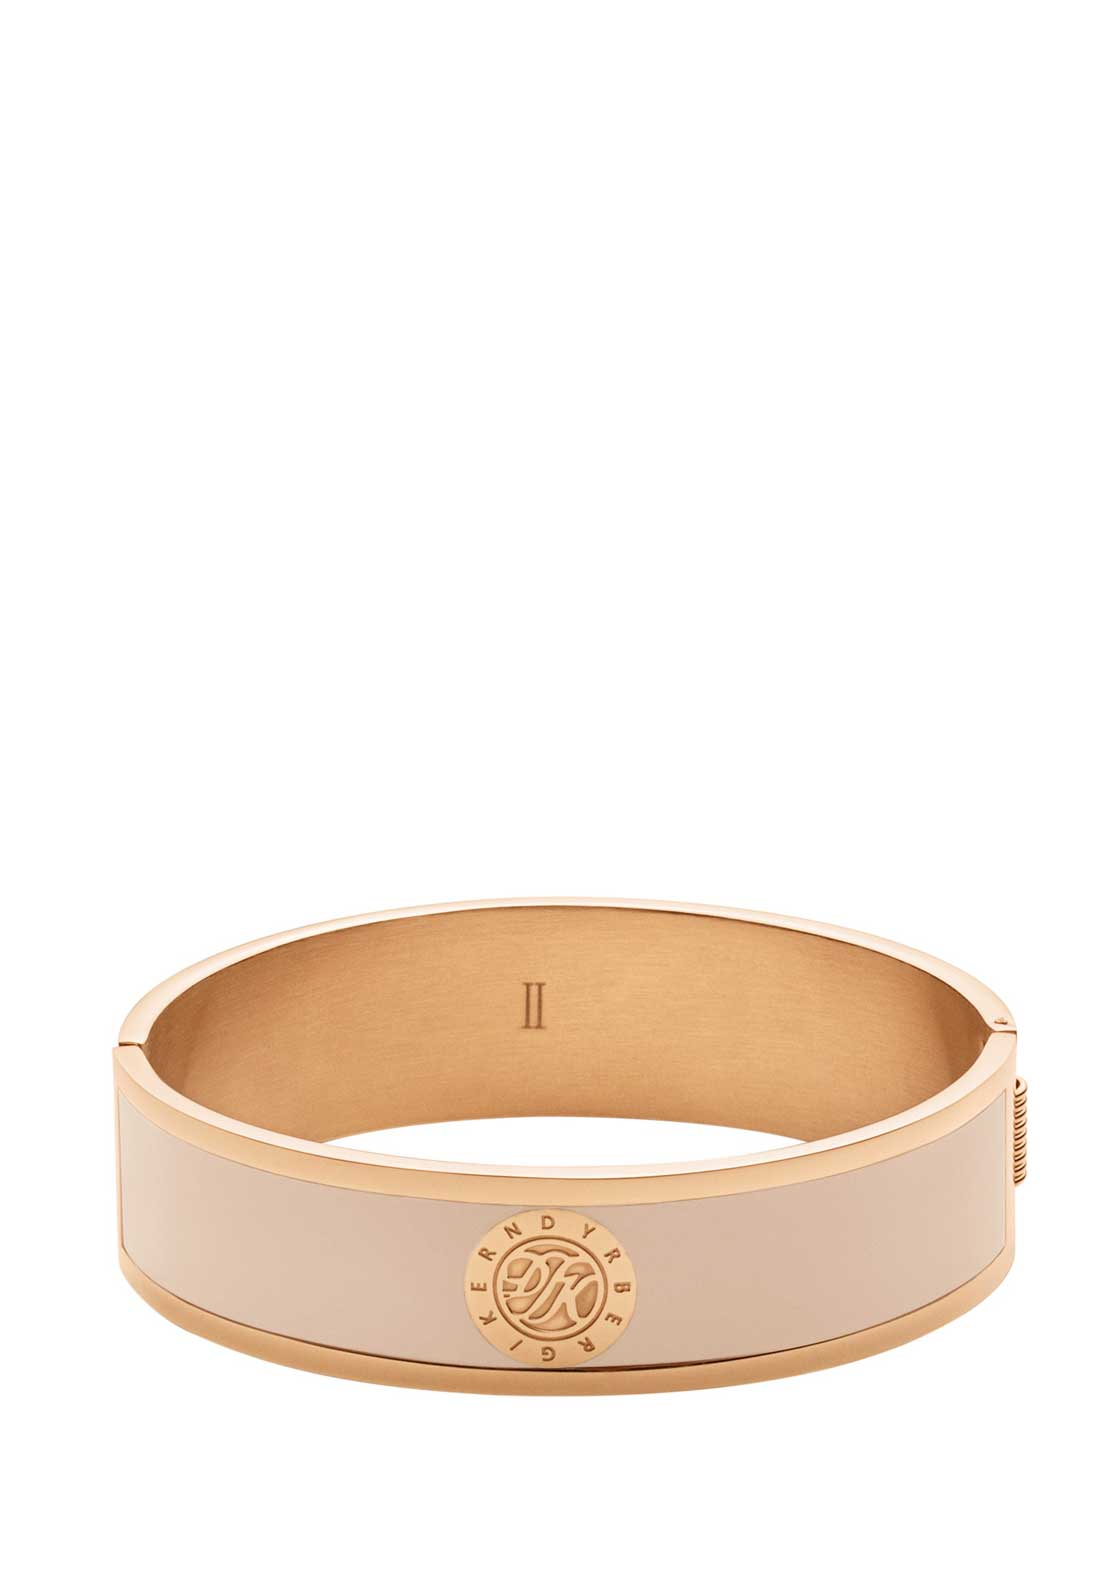 Dyrberg Kern Jovika Cream Bangle, Small